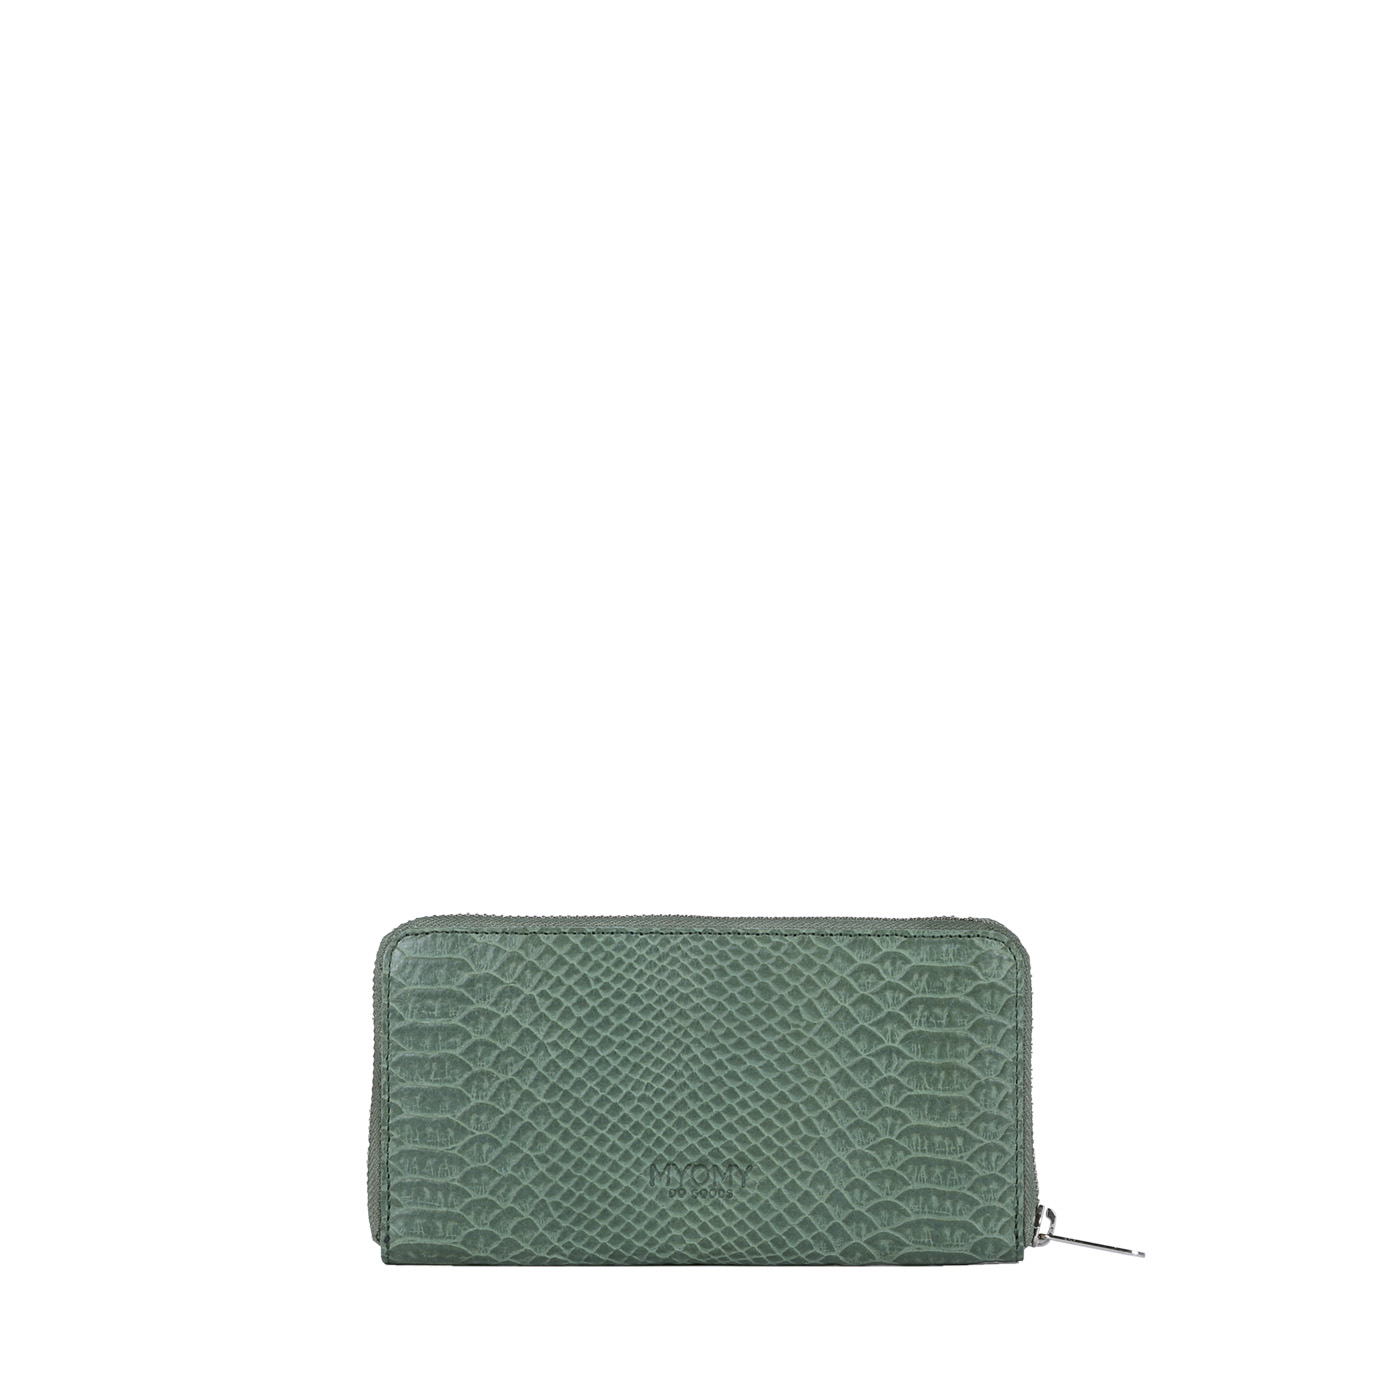 MY PAPER BAG Wallet - anaconda sea green